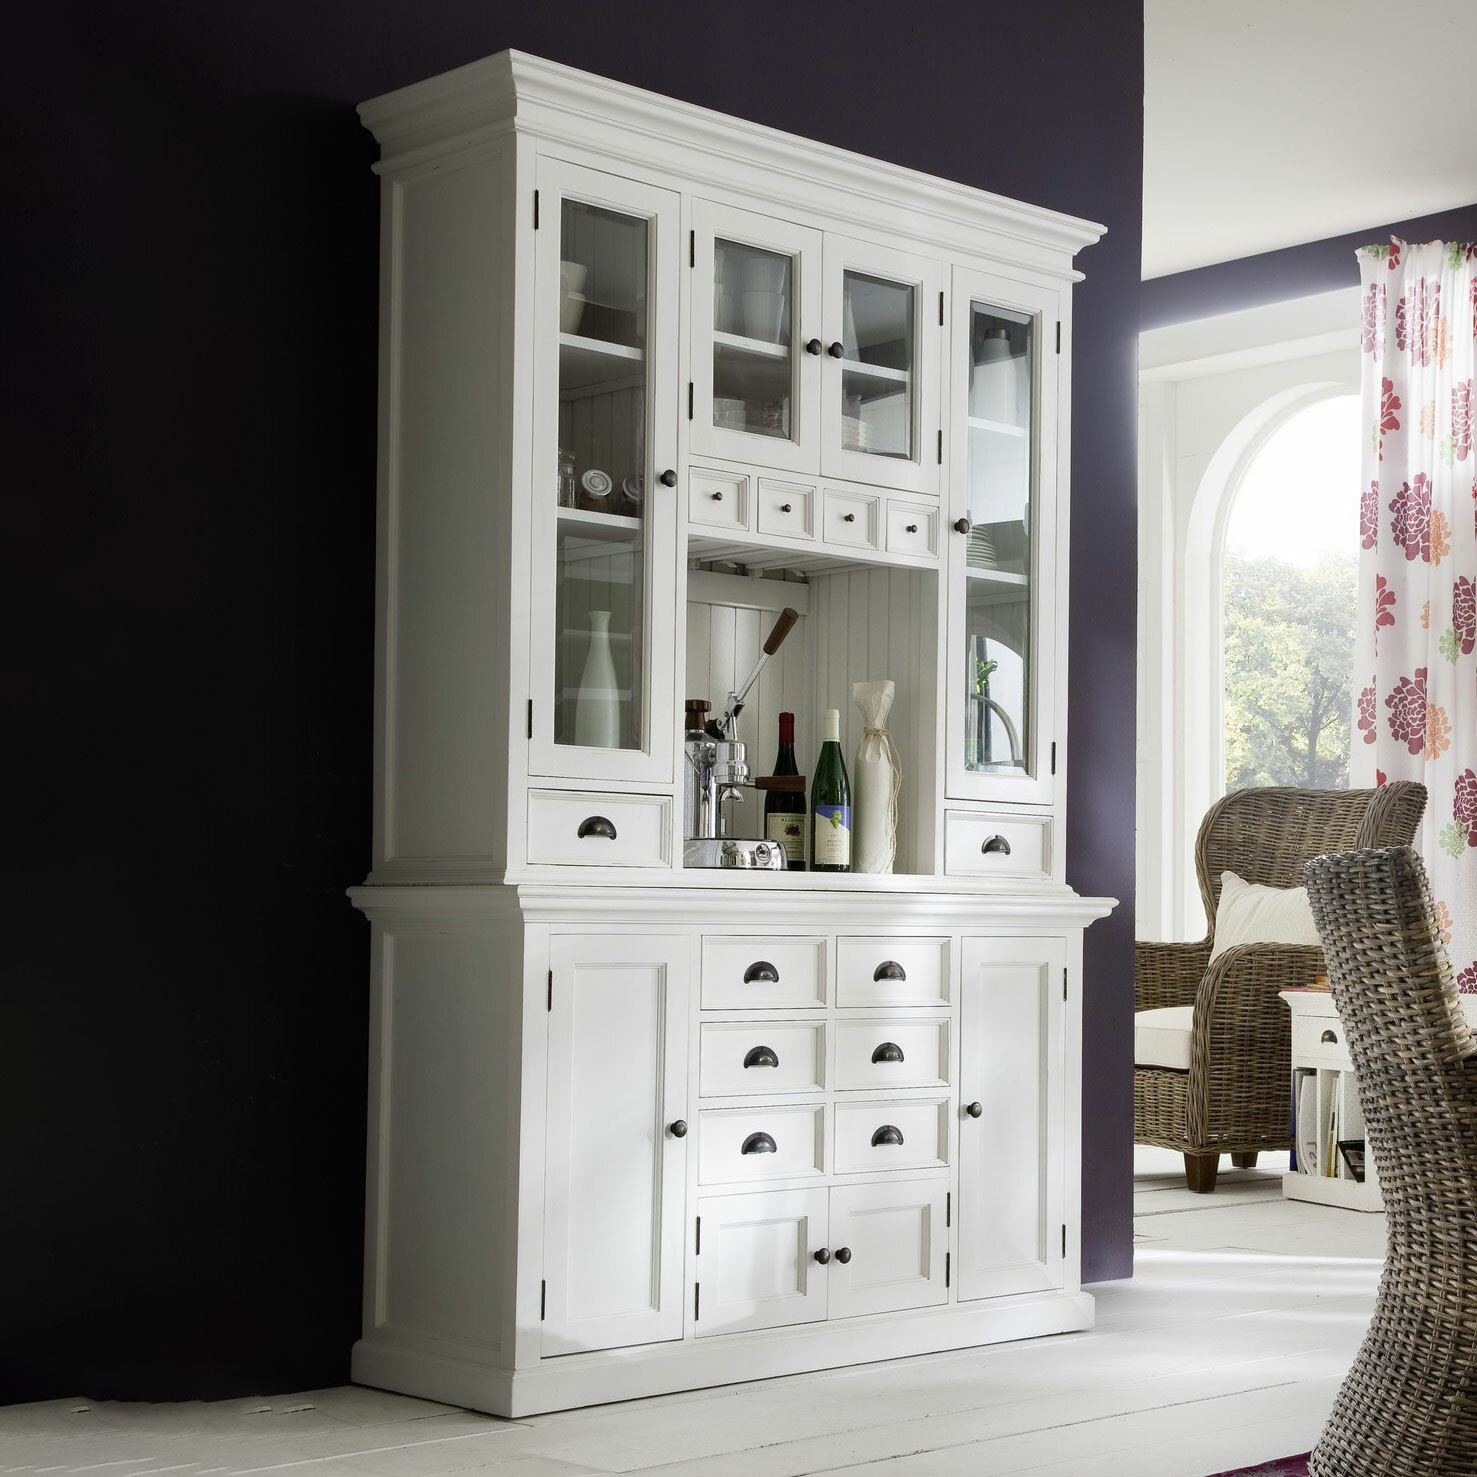 Image of: Balmoral Designs Halifax Hutch Kitchen Cabinet And Buffet Base Reviews Temple Webster